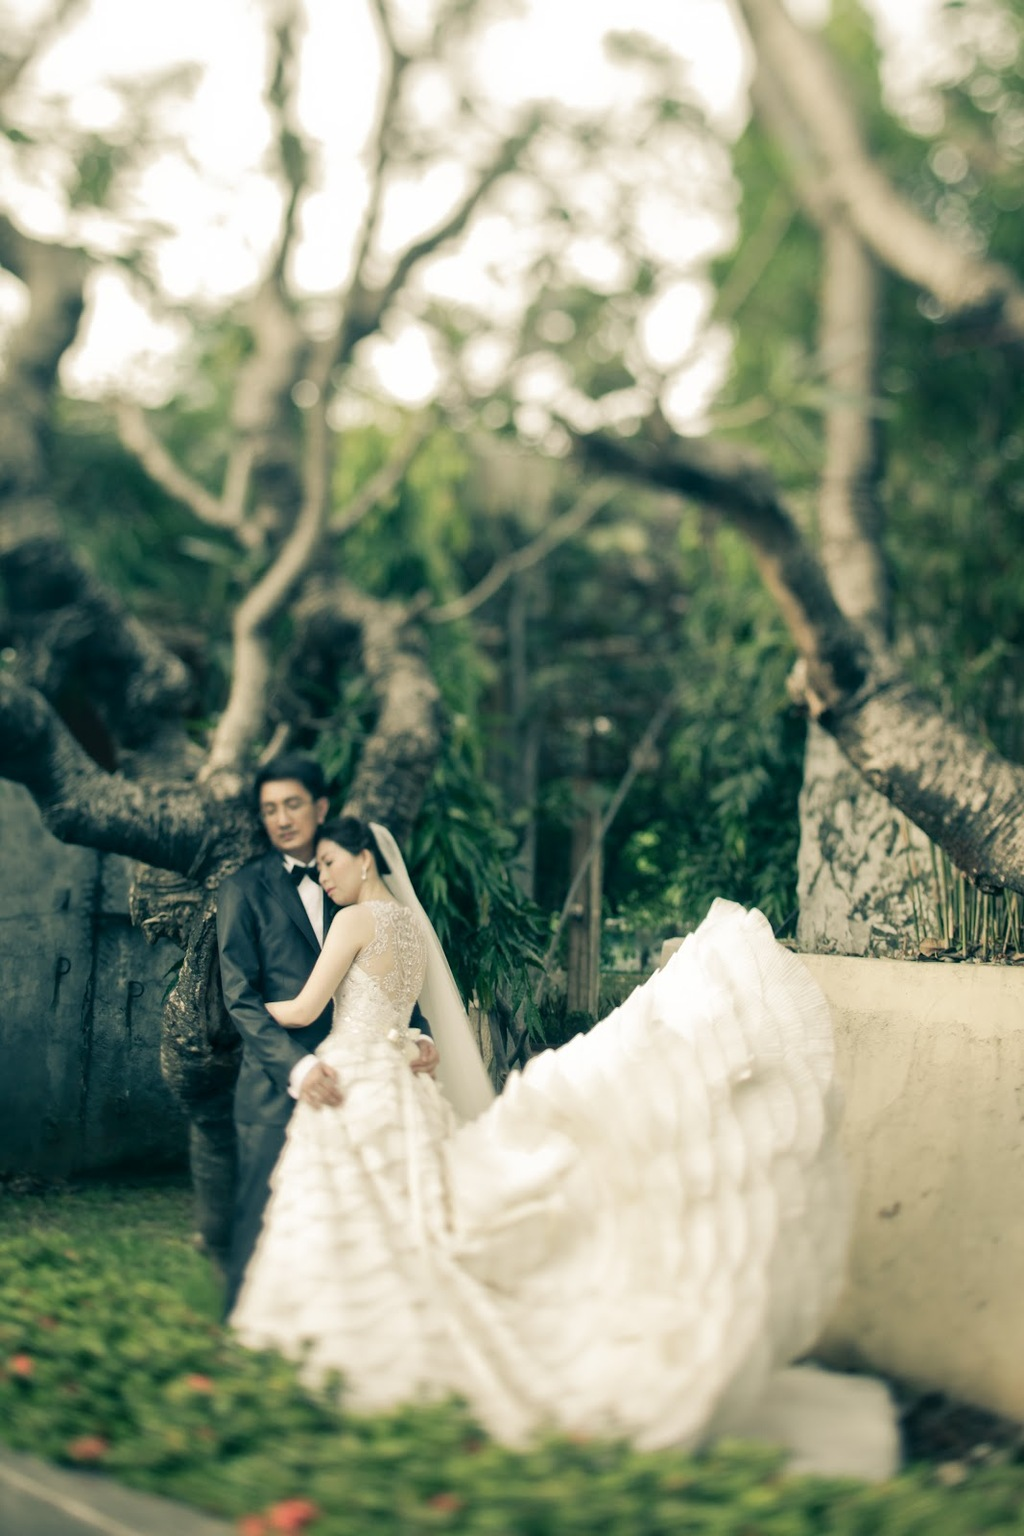 Top 13 Wedding Trends for 2013